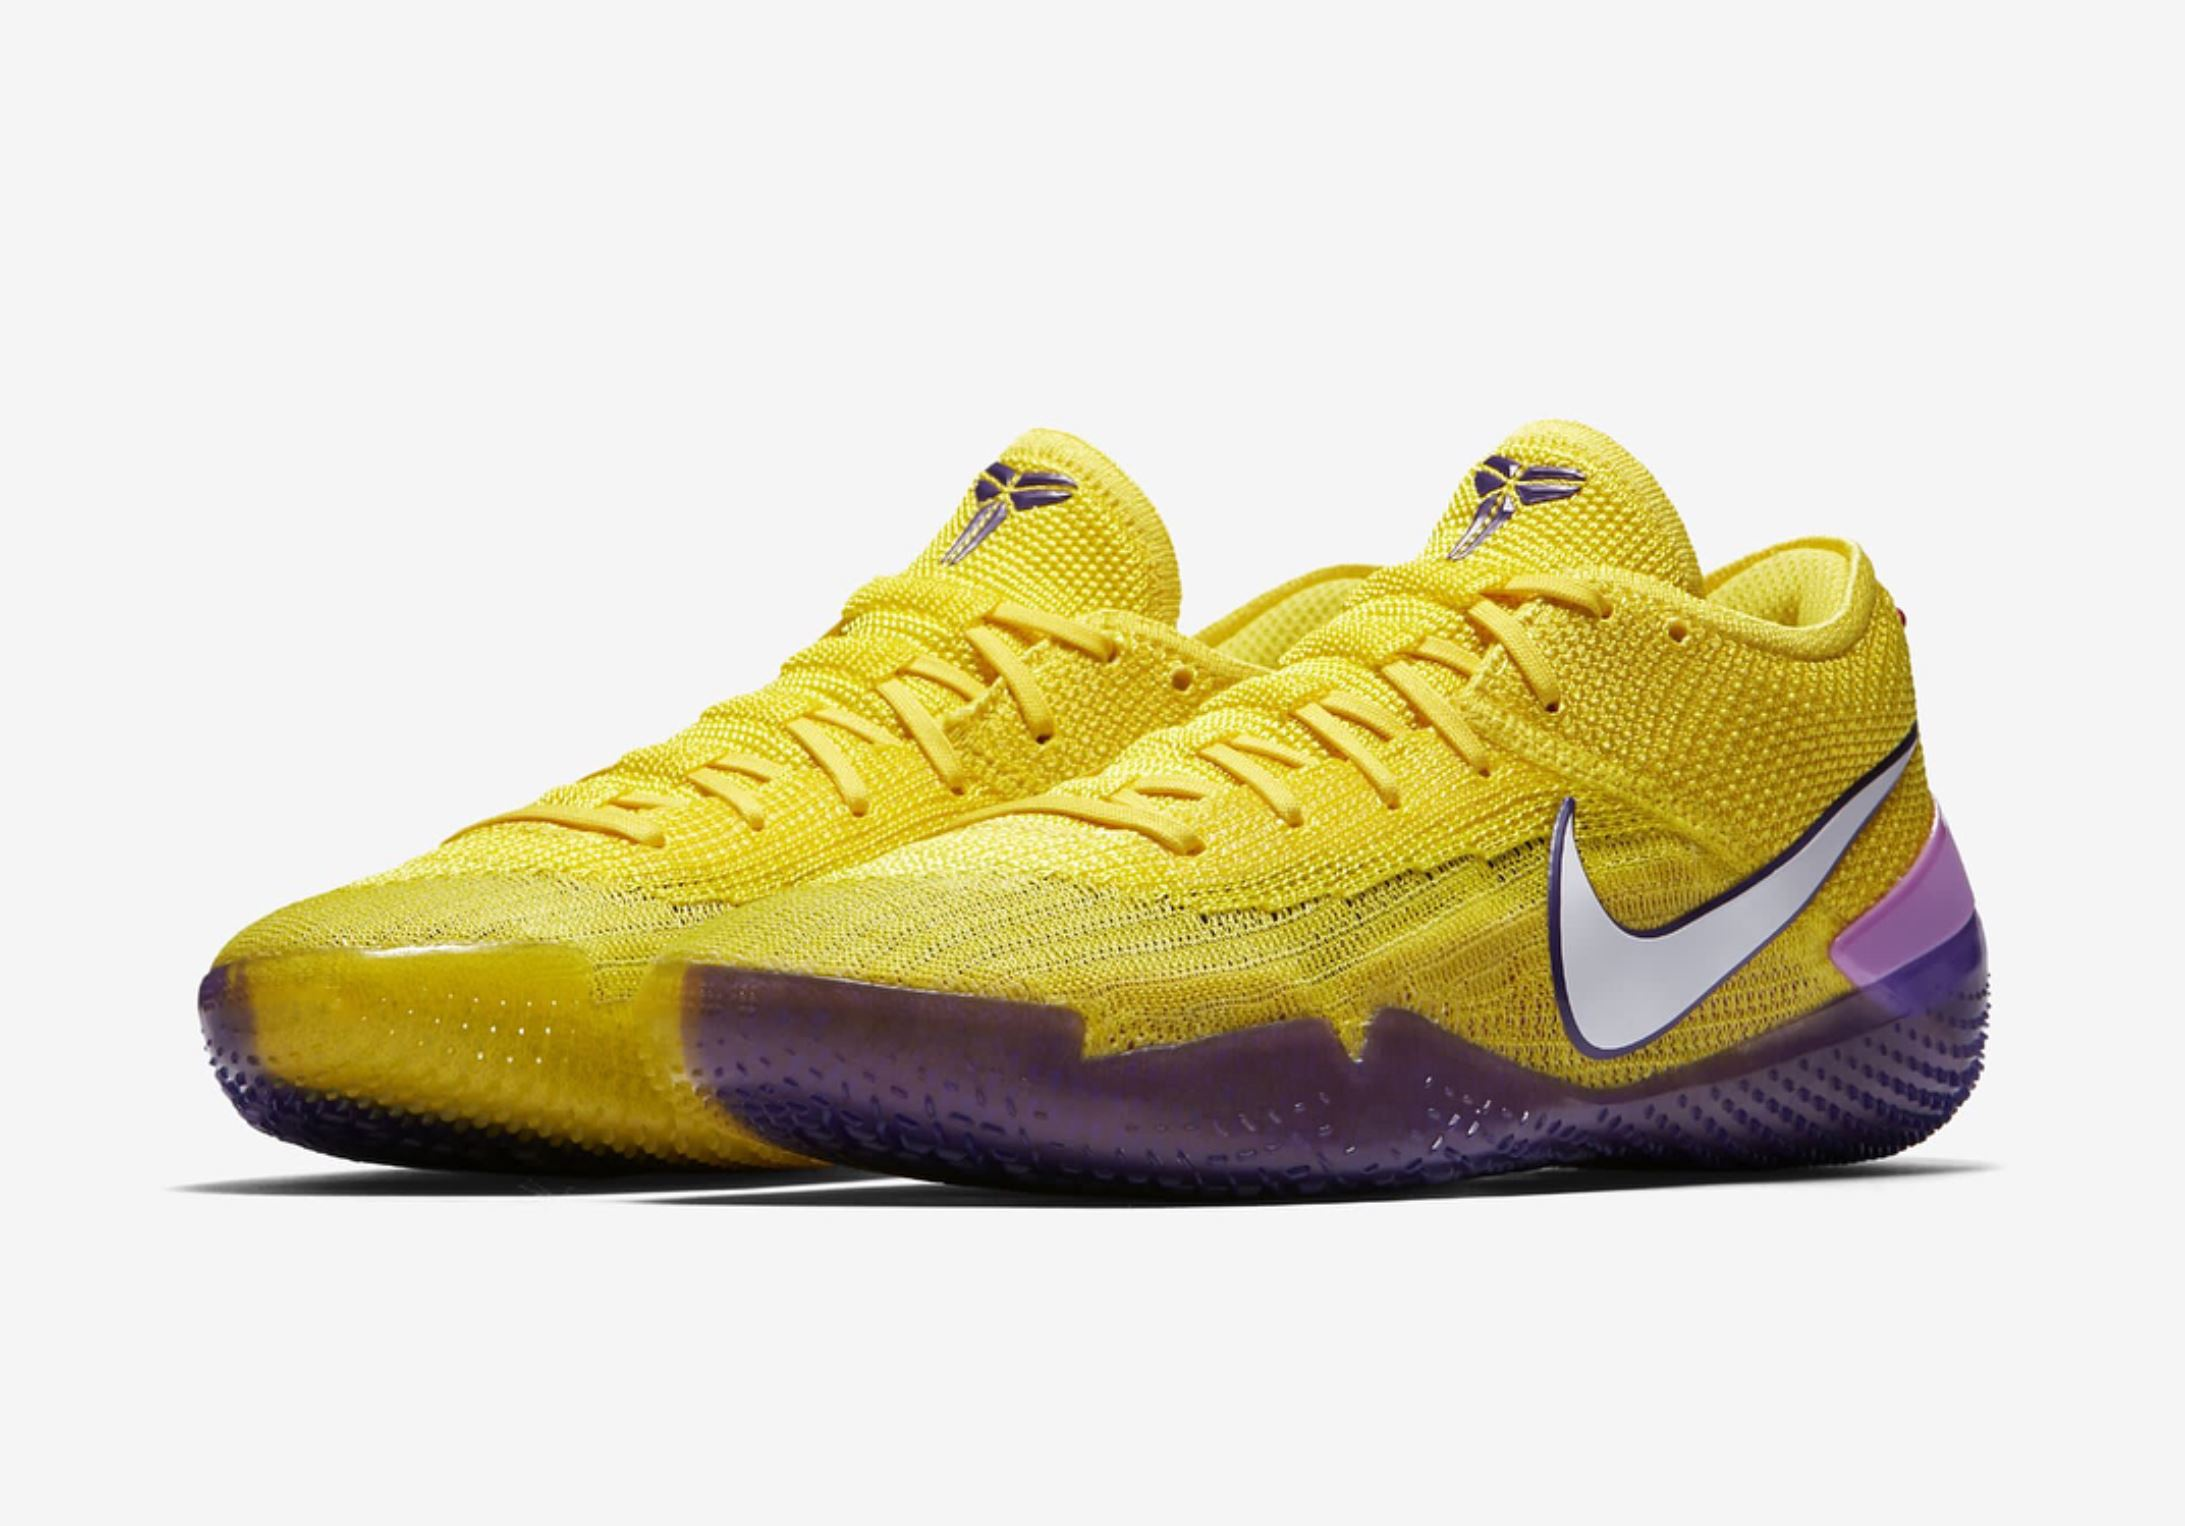 The Nike Kobe NXT 360 Surfaces in a